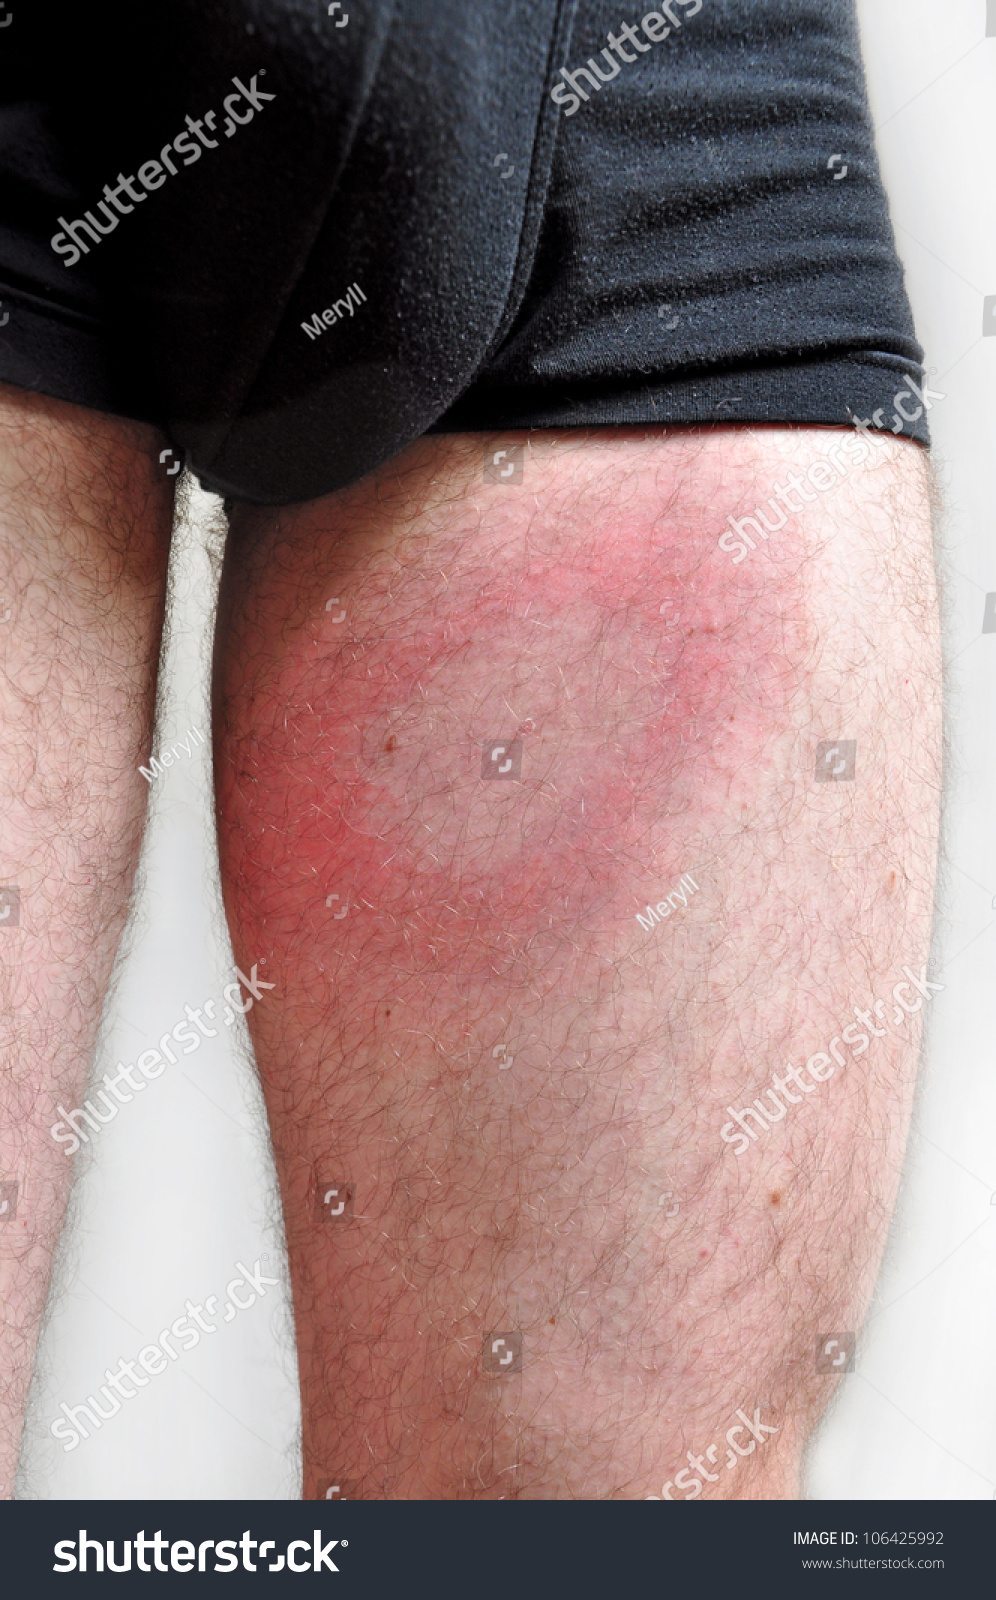 Lyme Disease, People Health, Man Infected. Stock Photo 106425992 : Shutterstock